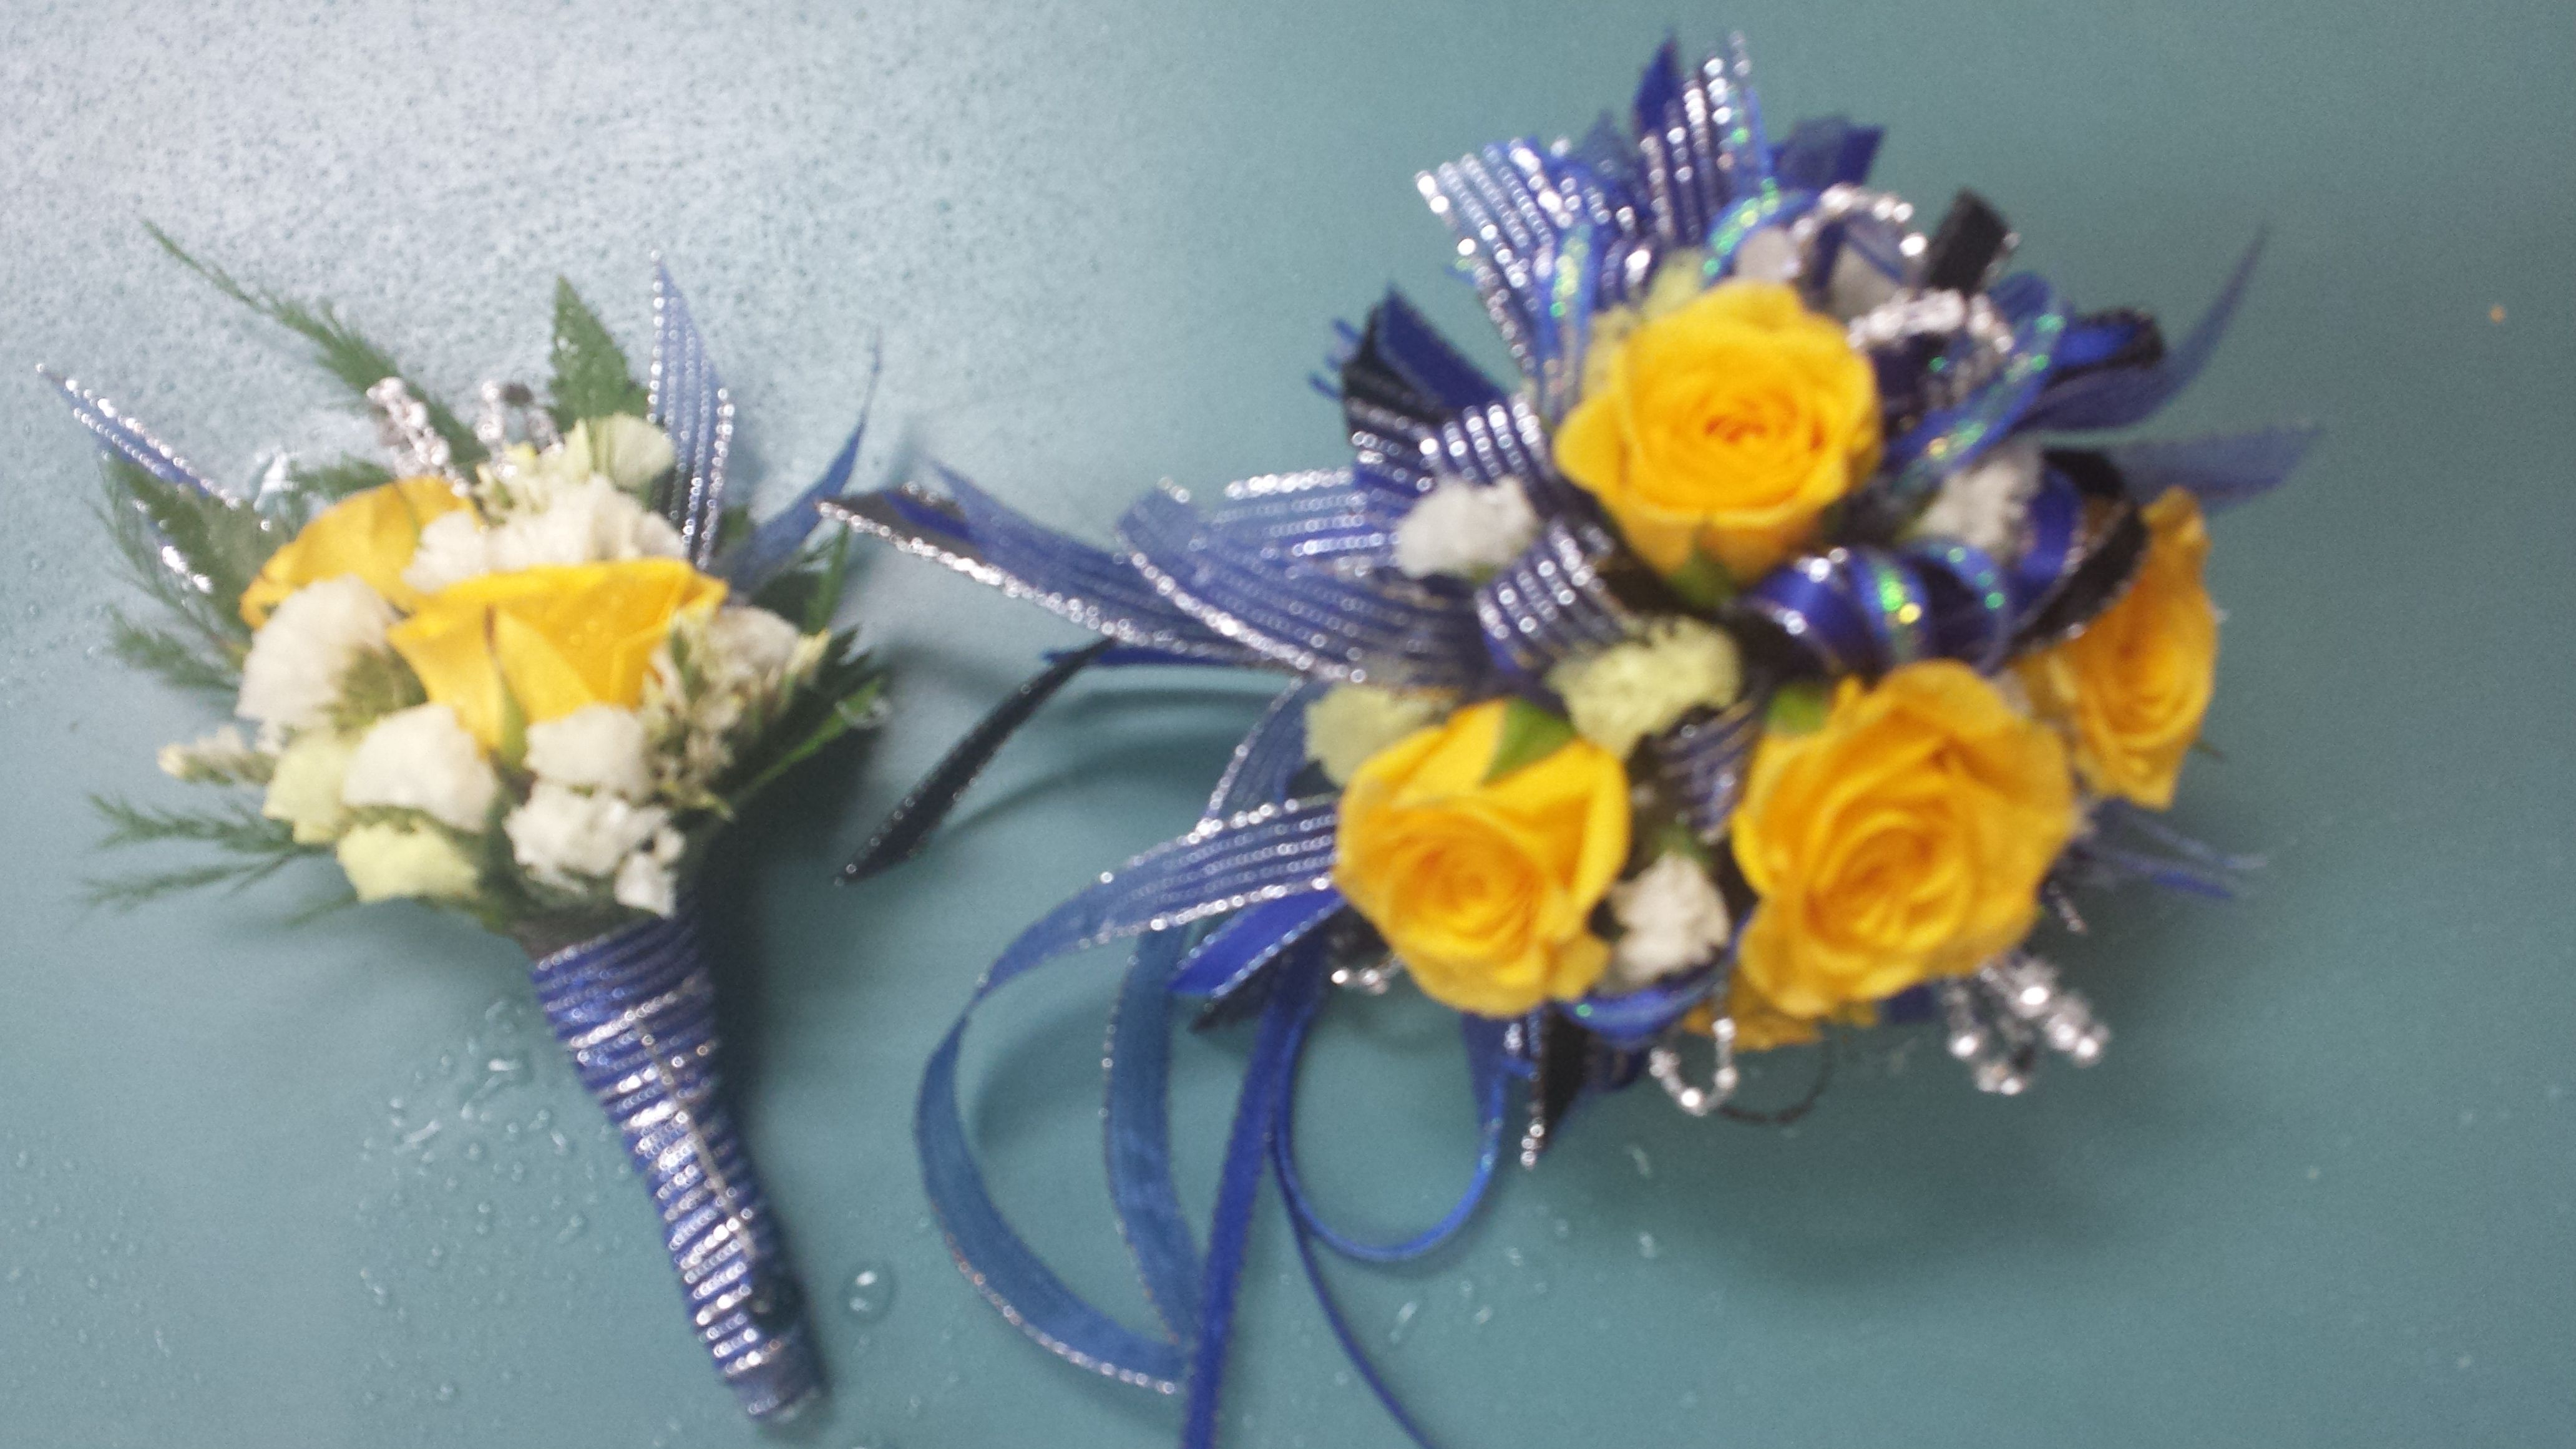 Prom Flowers from Gallery Florist and Gifts in Mebane, NC. www.galleryfloristandgifts.com